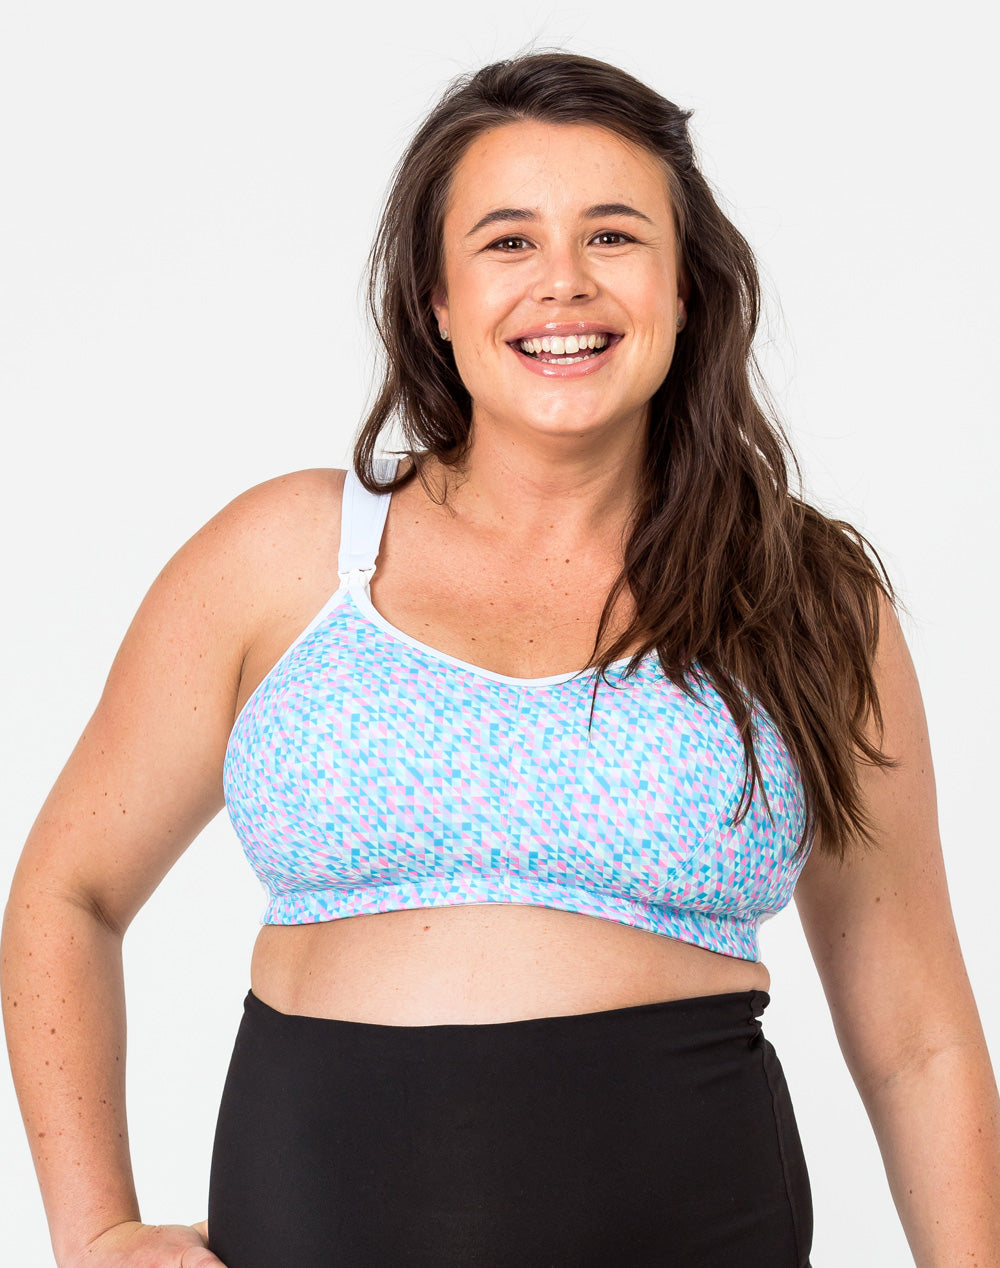 Nursing Sports Bra - Ultimate Bra Confetti